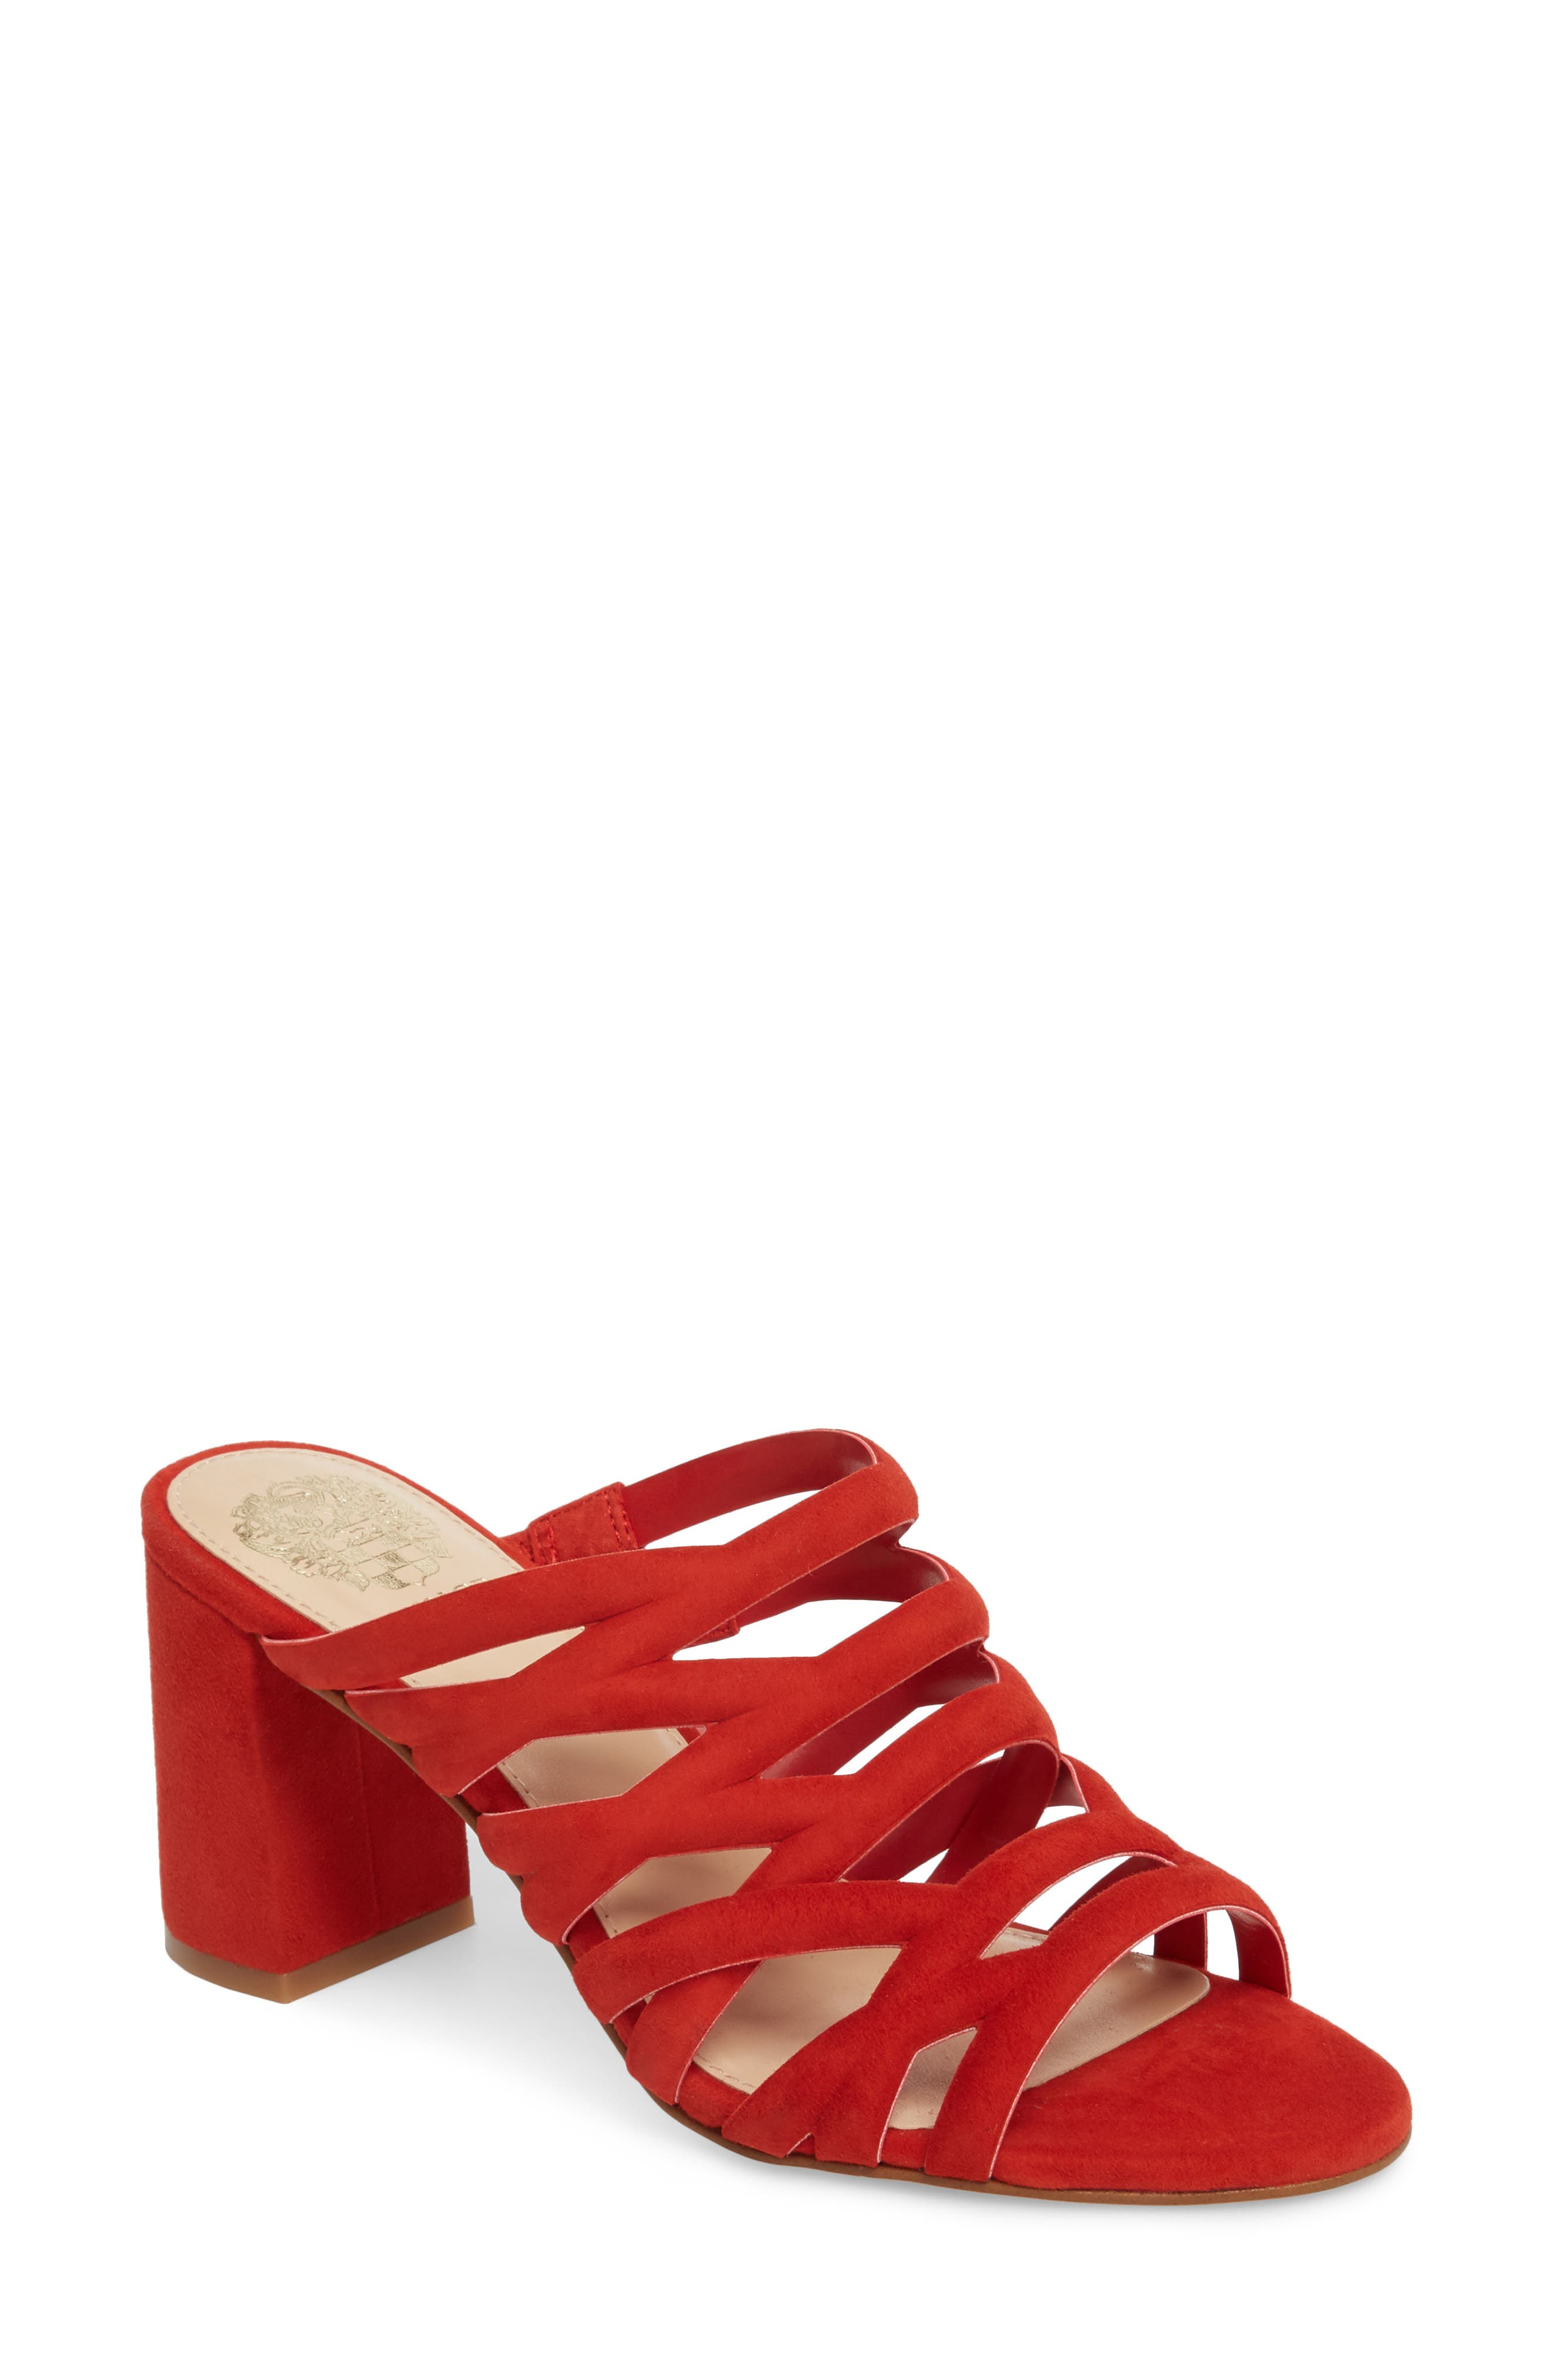 Raveana Cage Mule,                             Main thumbnail 1, color,                             Red Hot Rio Suede